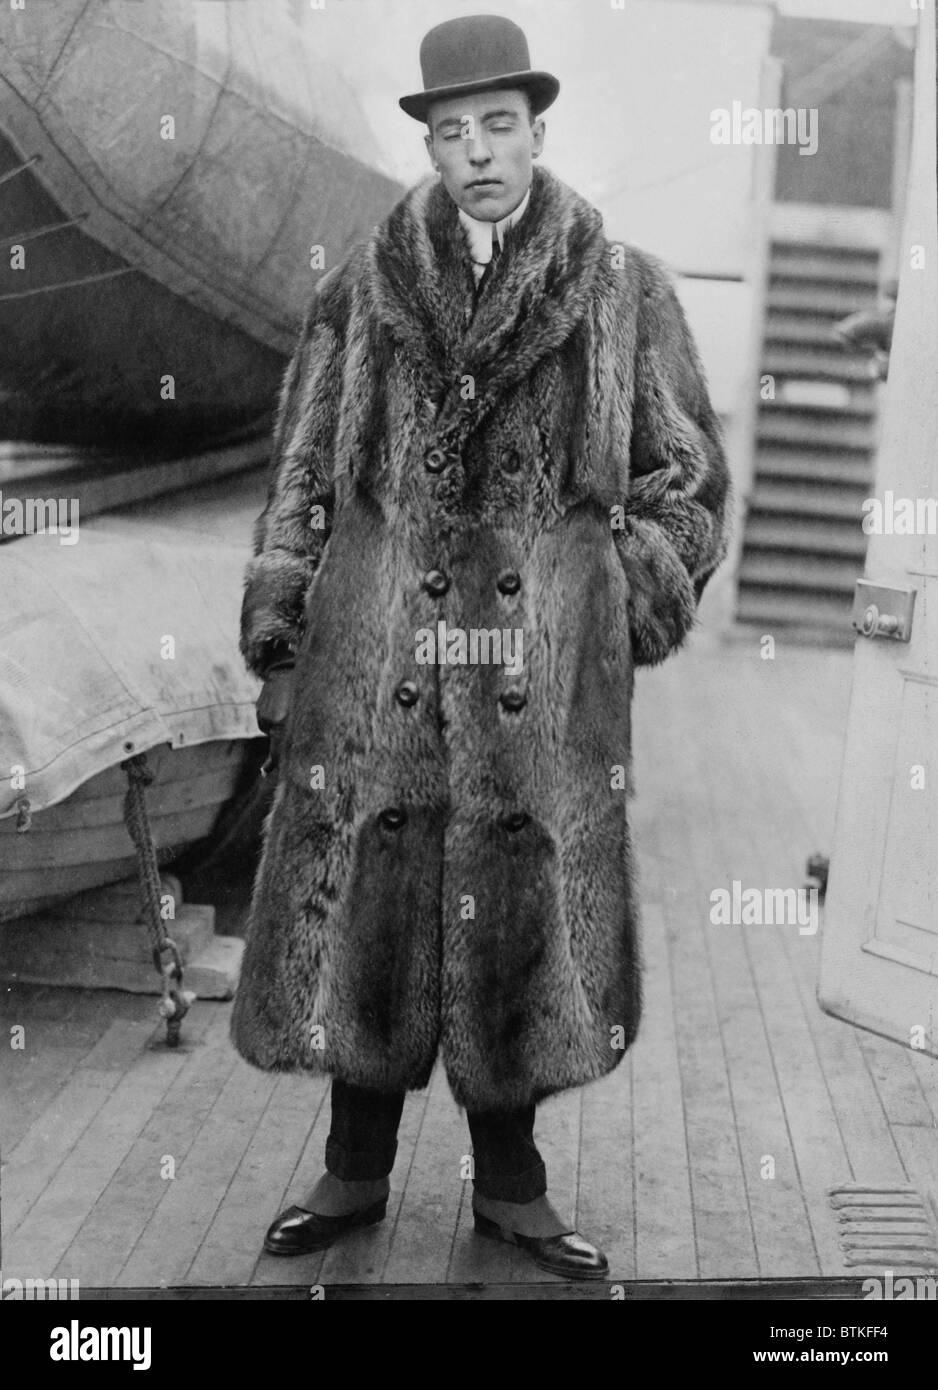 Vincent Astor (1891-1959), on deck of ship wearing fur coat. After his father, John Jacob Astor IV, died in the - Stock Image